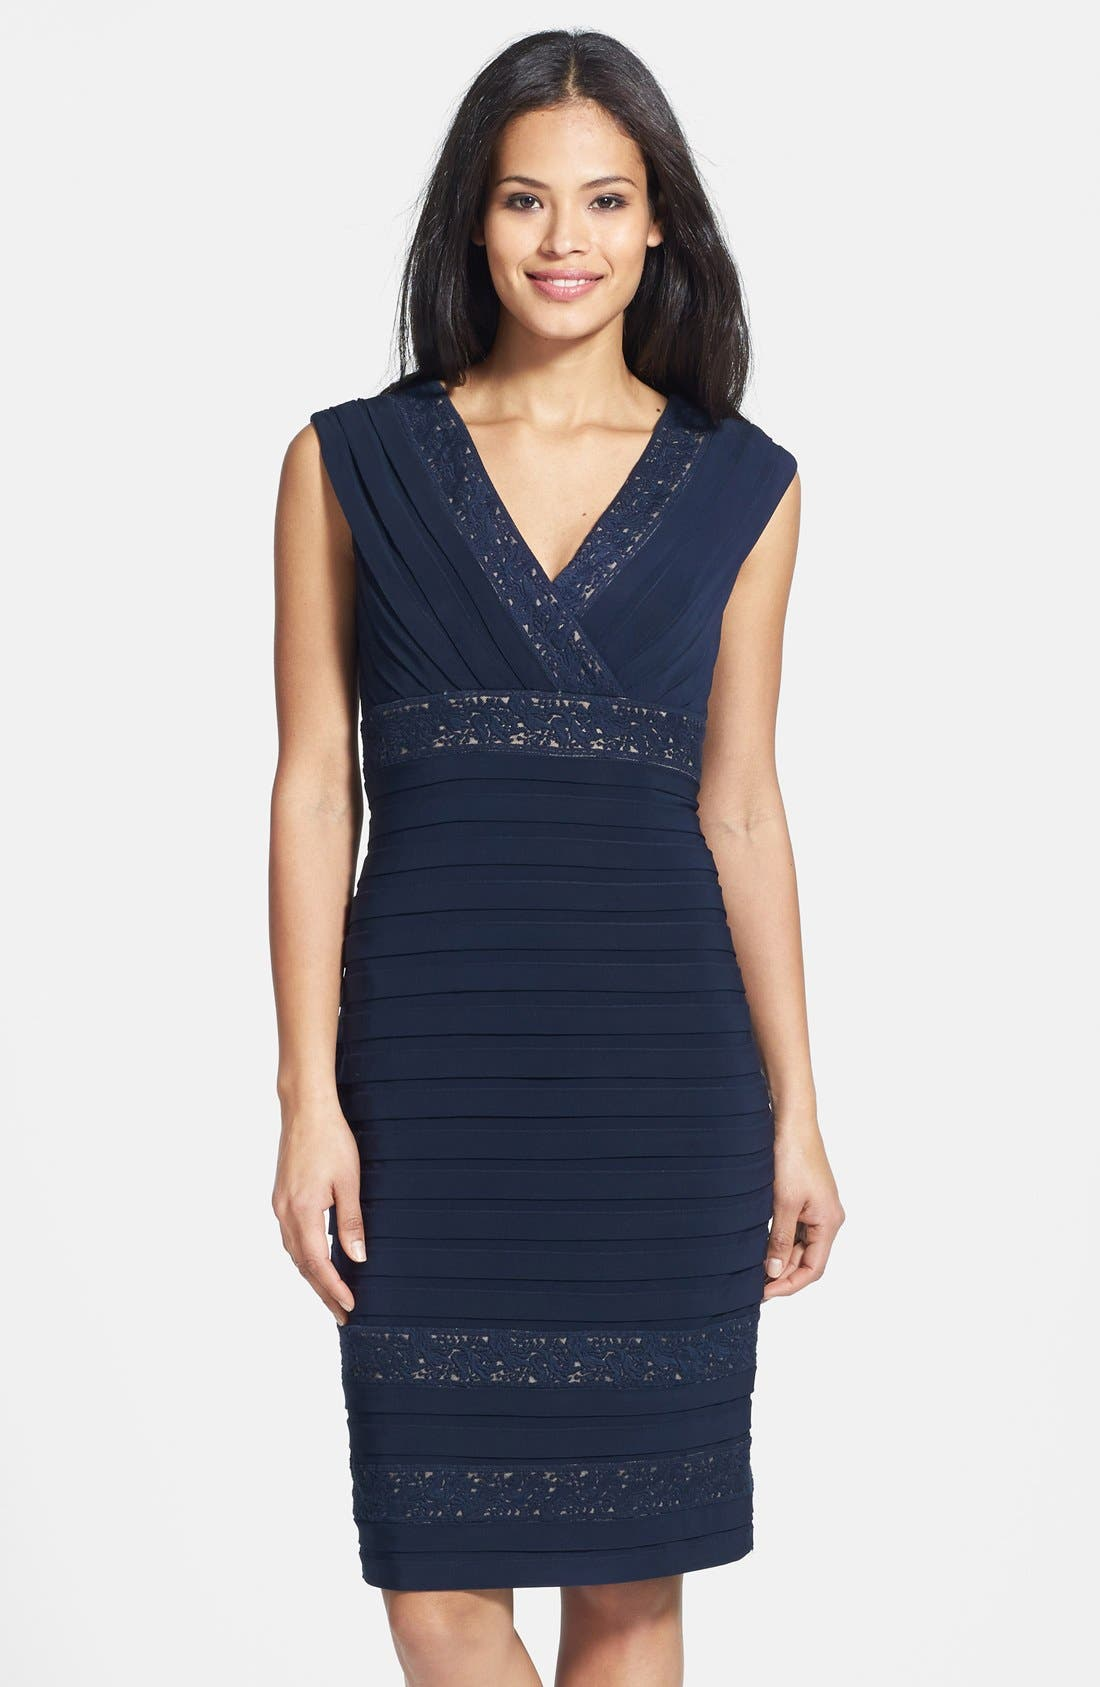 Main Image - Adrianna Papell Lace Inset Banded Sheath Dress